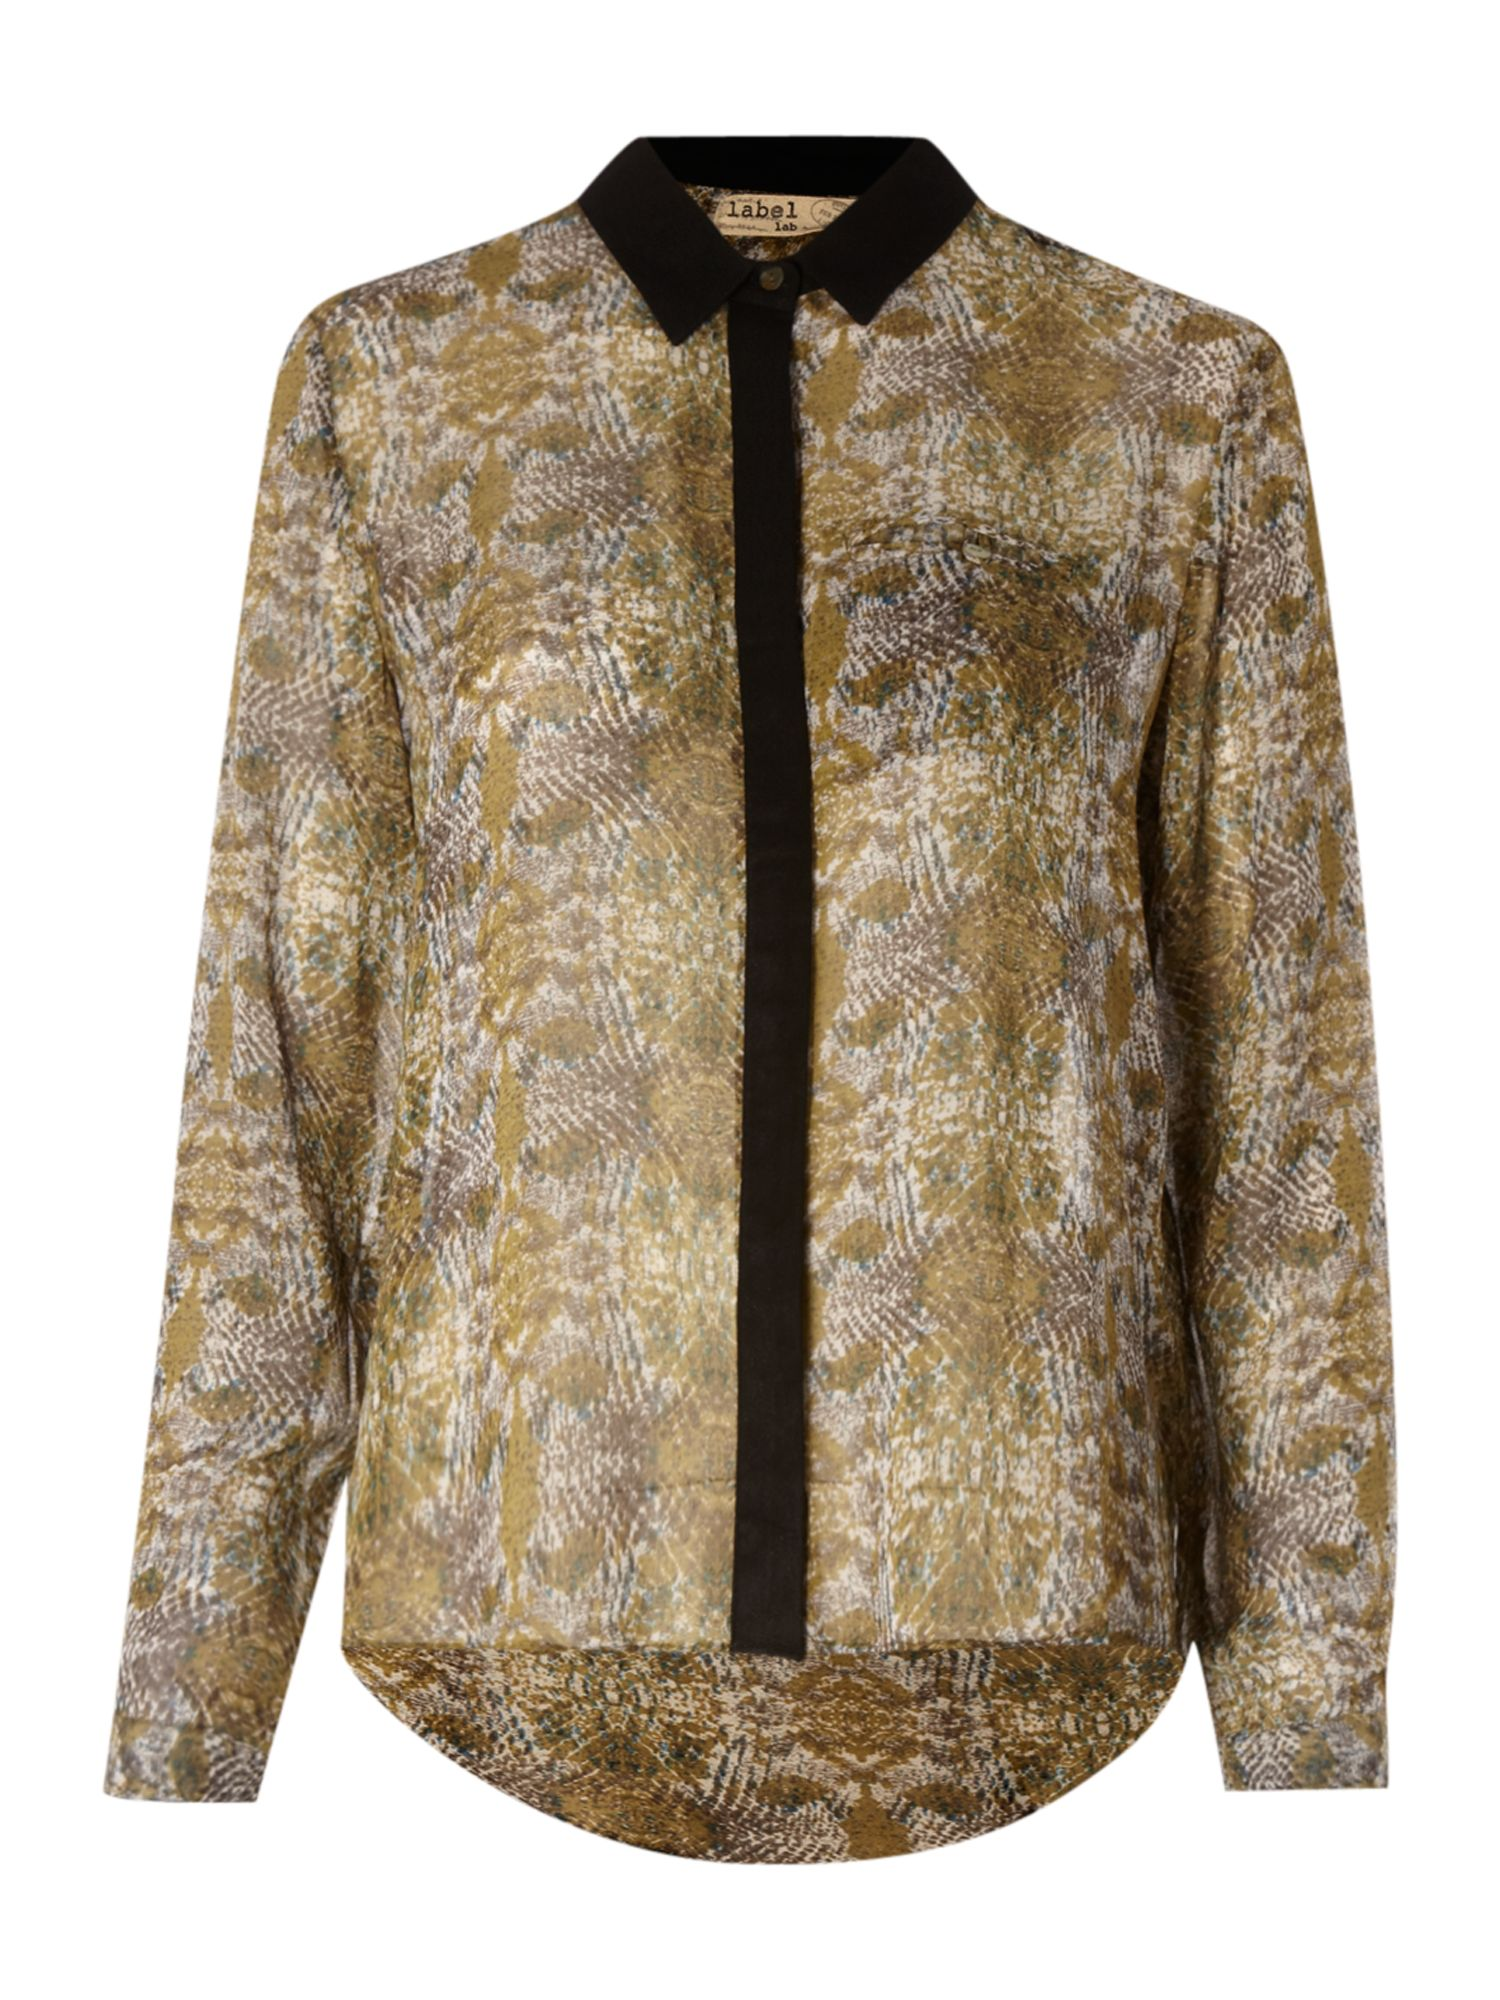 Label Lab High-low botton shirt, Snake Print